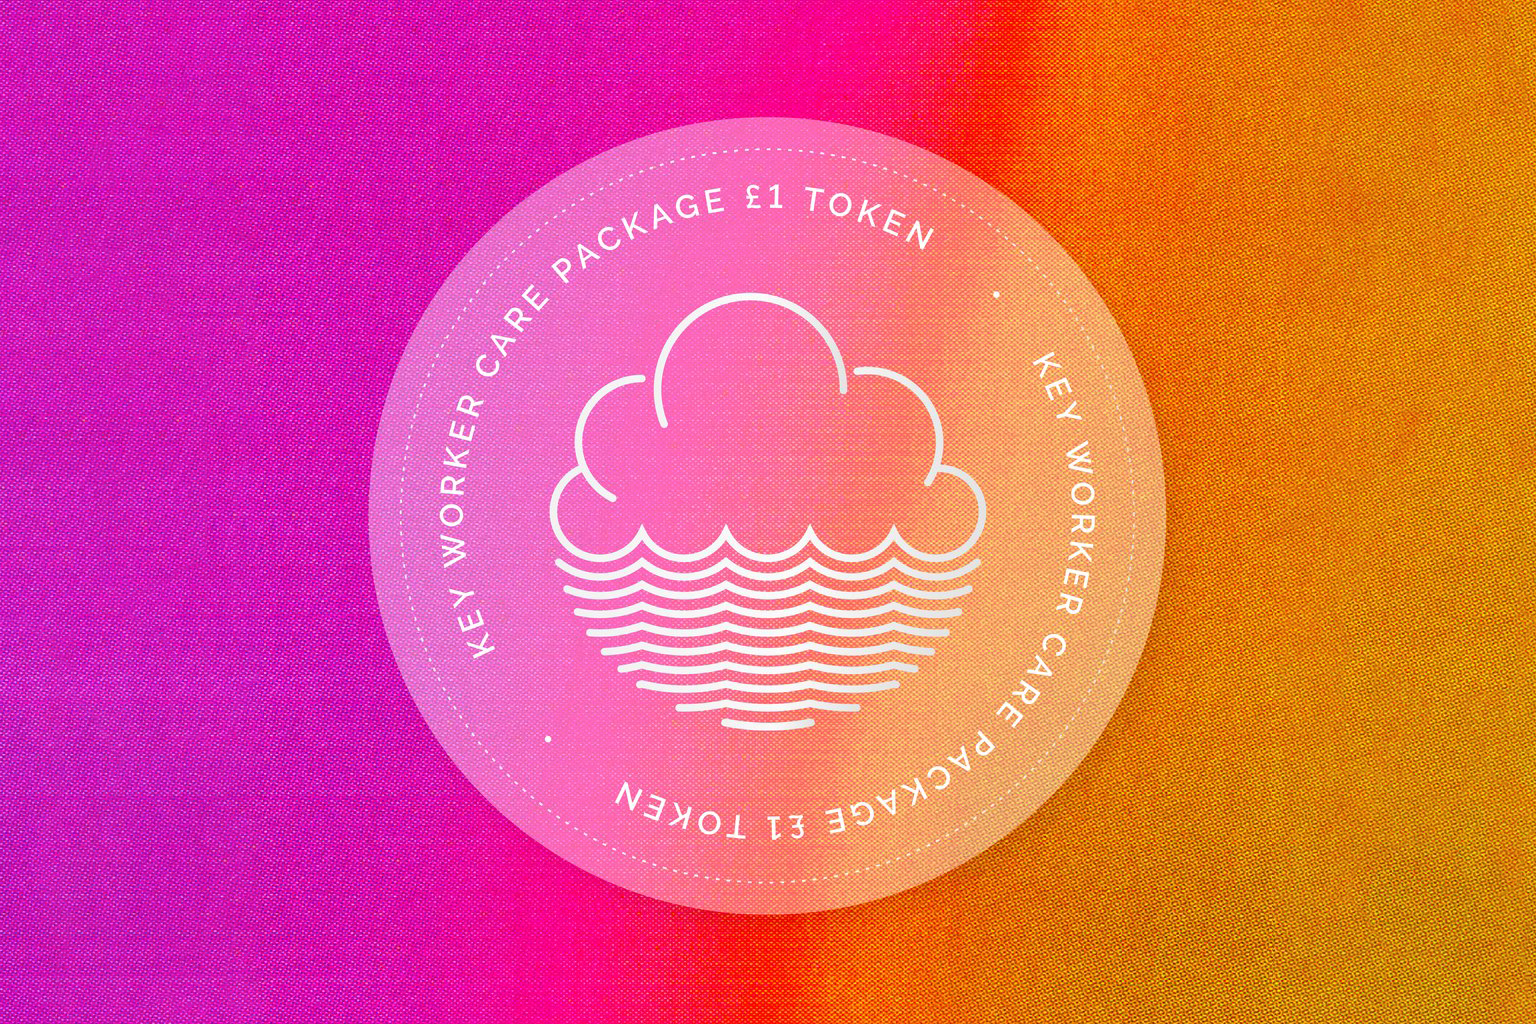 Showing Some Love in the Time of Corona - Cloudwater Key Worker Token